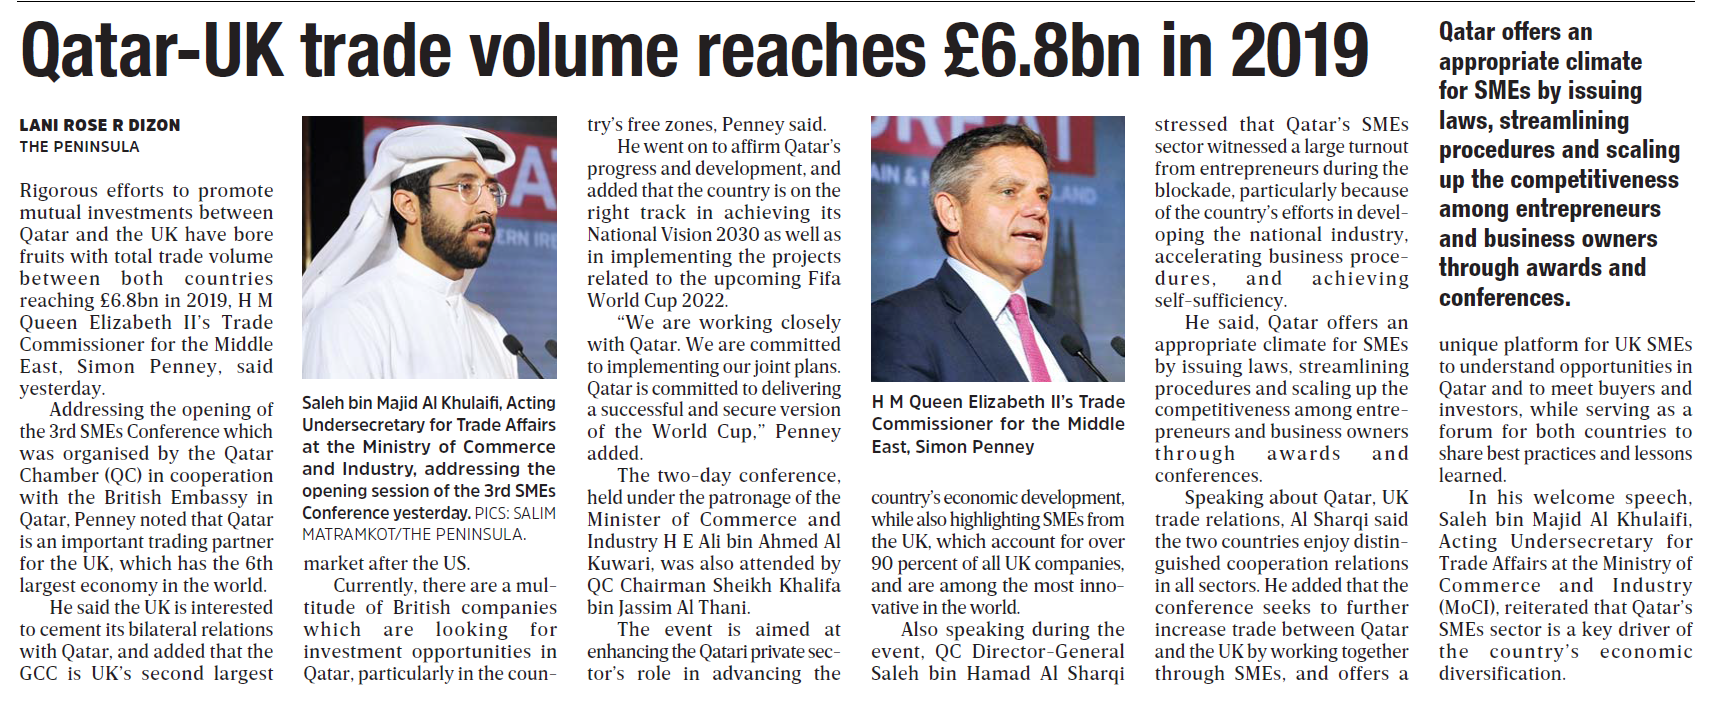 Qatar-UK trade volume reaches £6.8bn in 2019